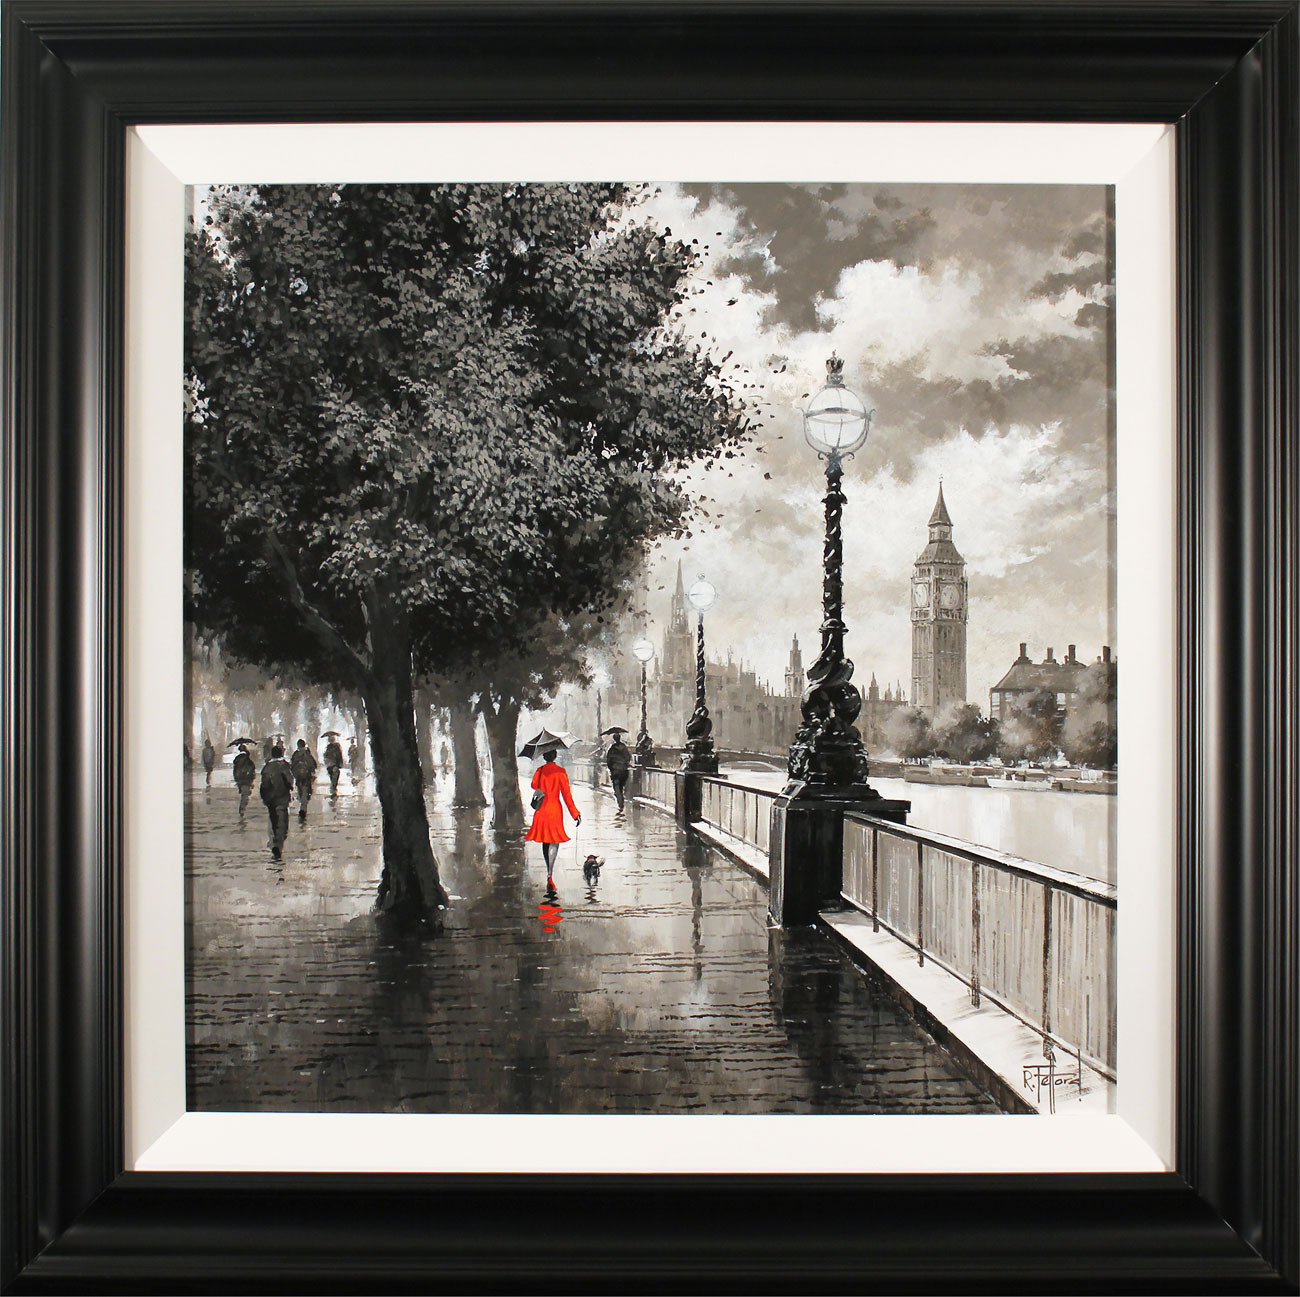 Richard Telford, Original oil painting on panel, The Queen's Walk, London, click to enlarge